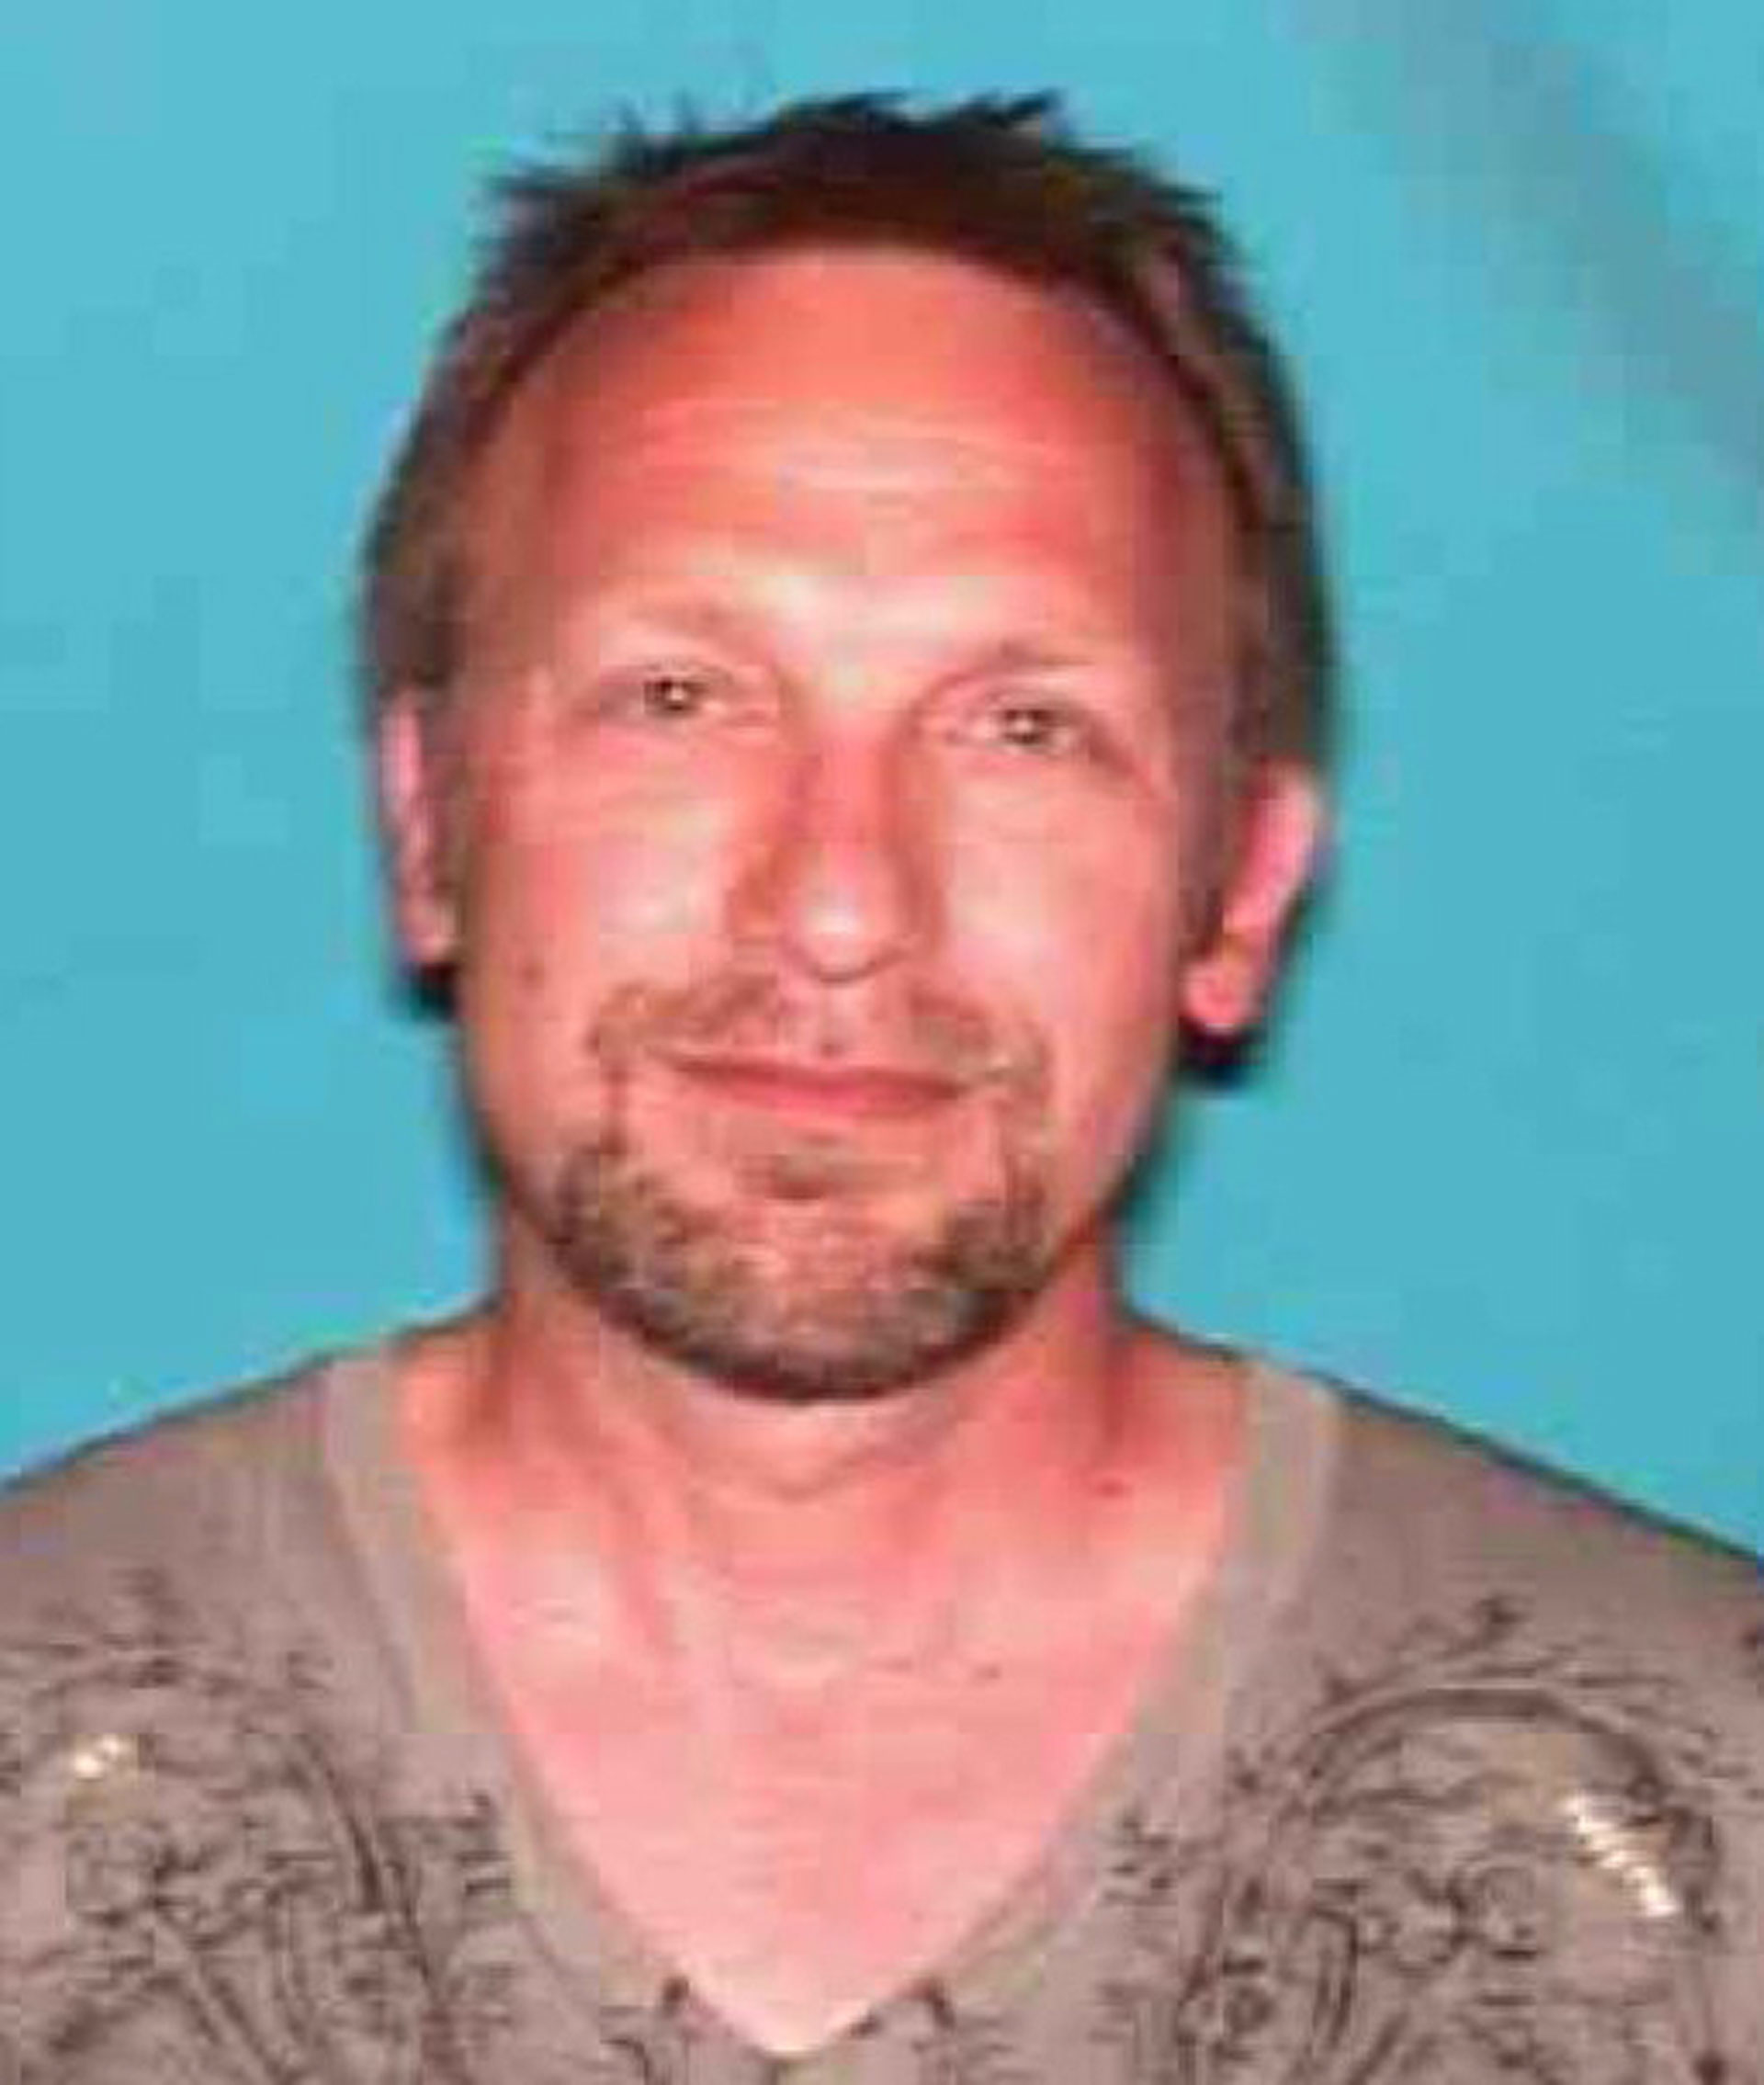 Ceo Of Backpage Com Arrested Charged With Pimping The California Report Kqed News